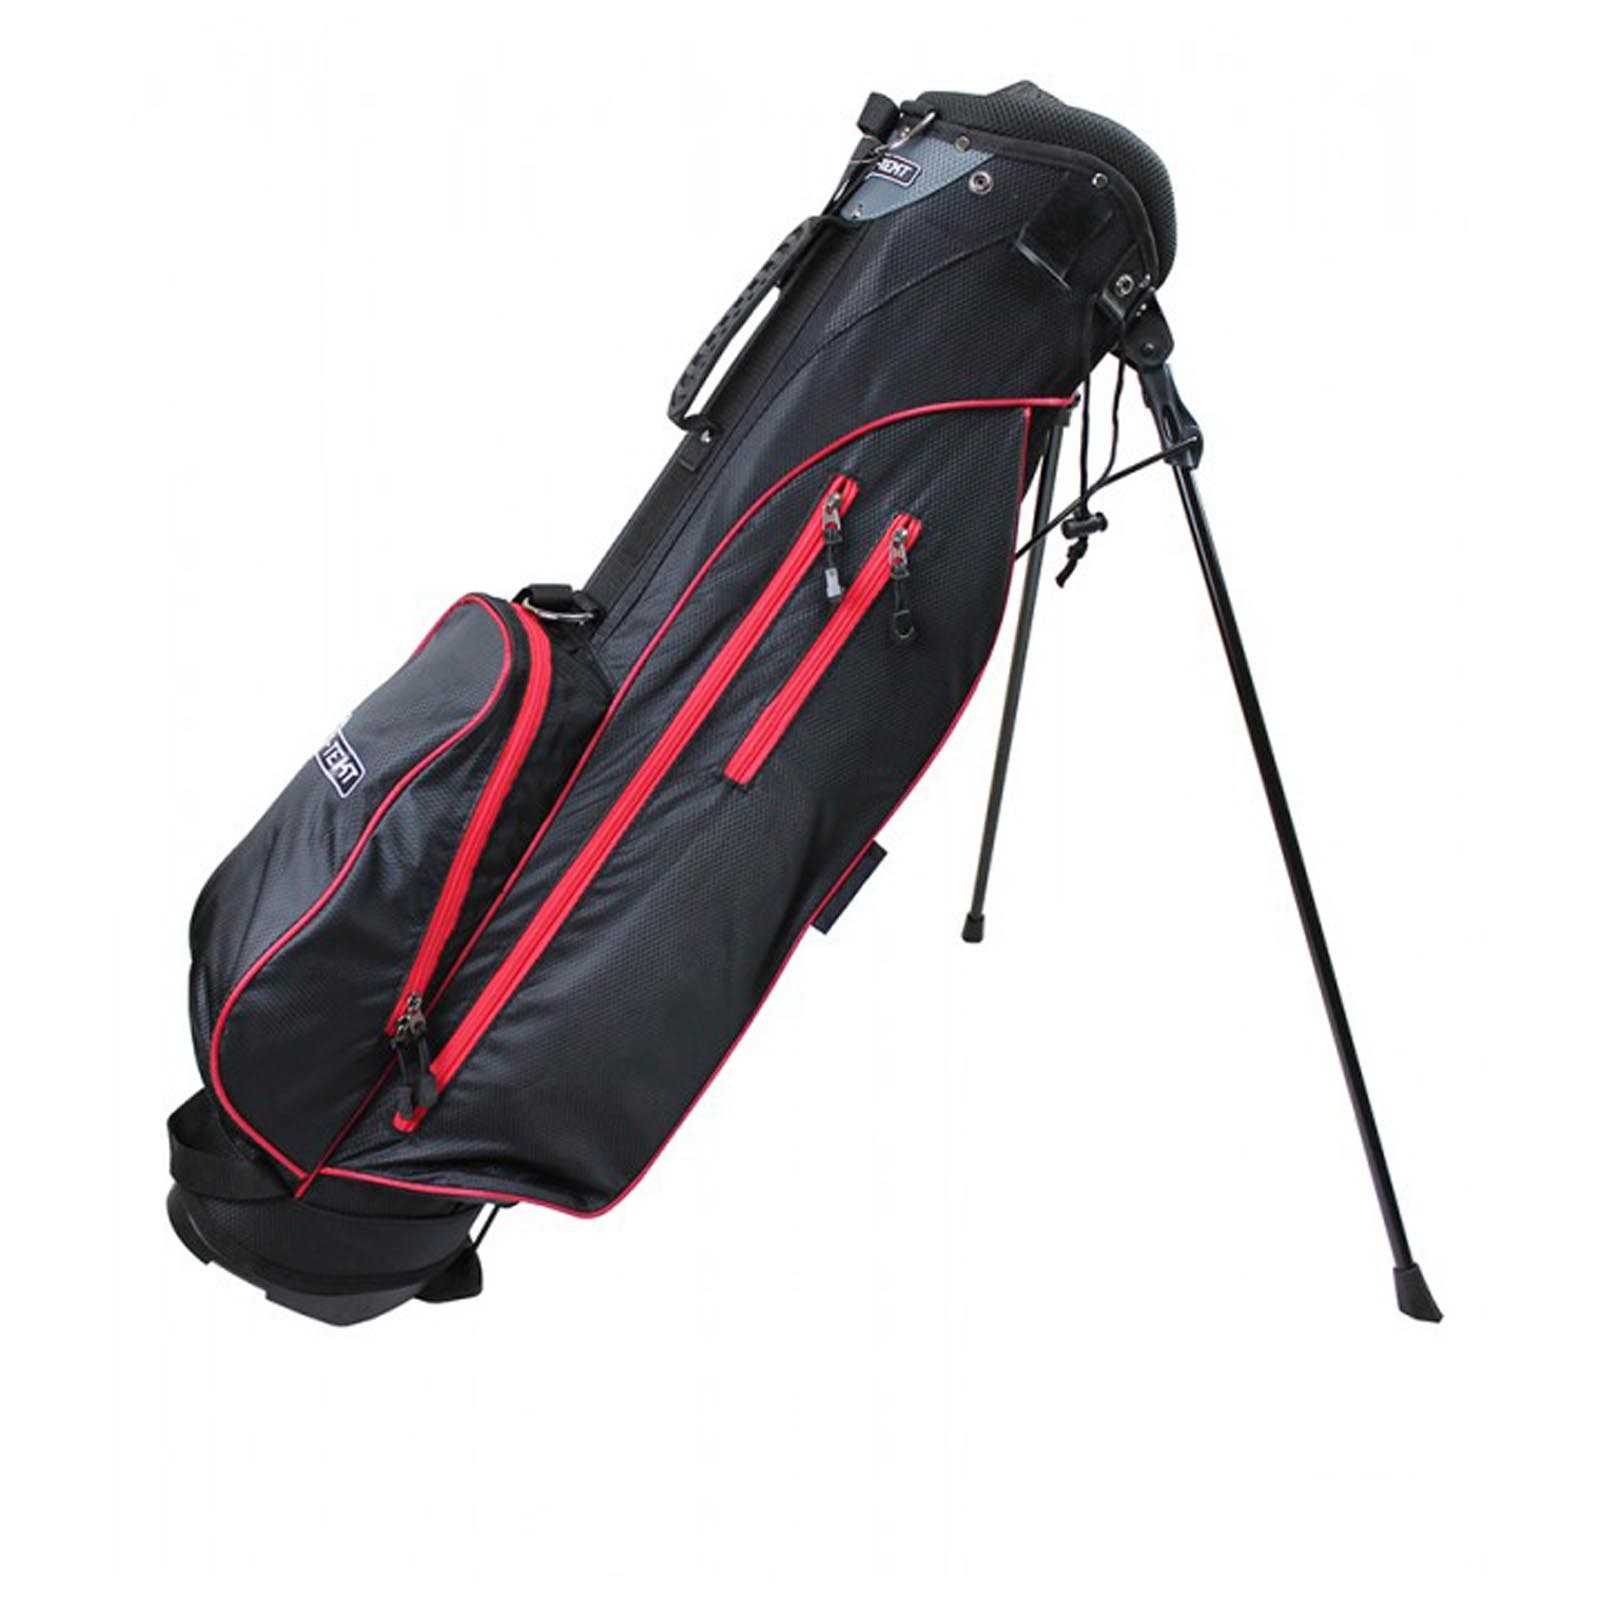 Pro-Tekt Stand Bags